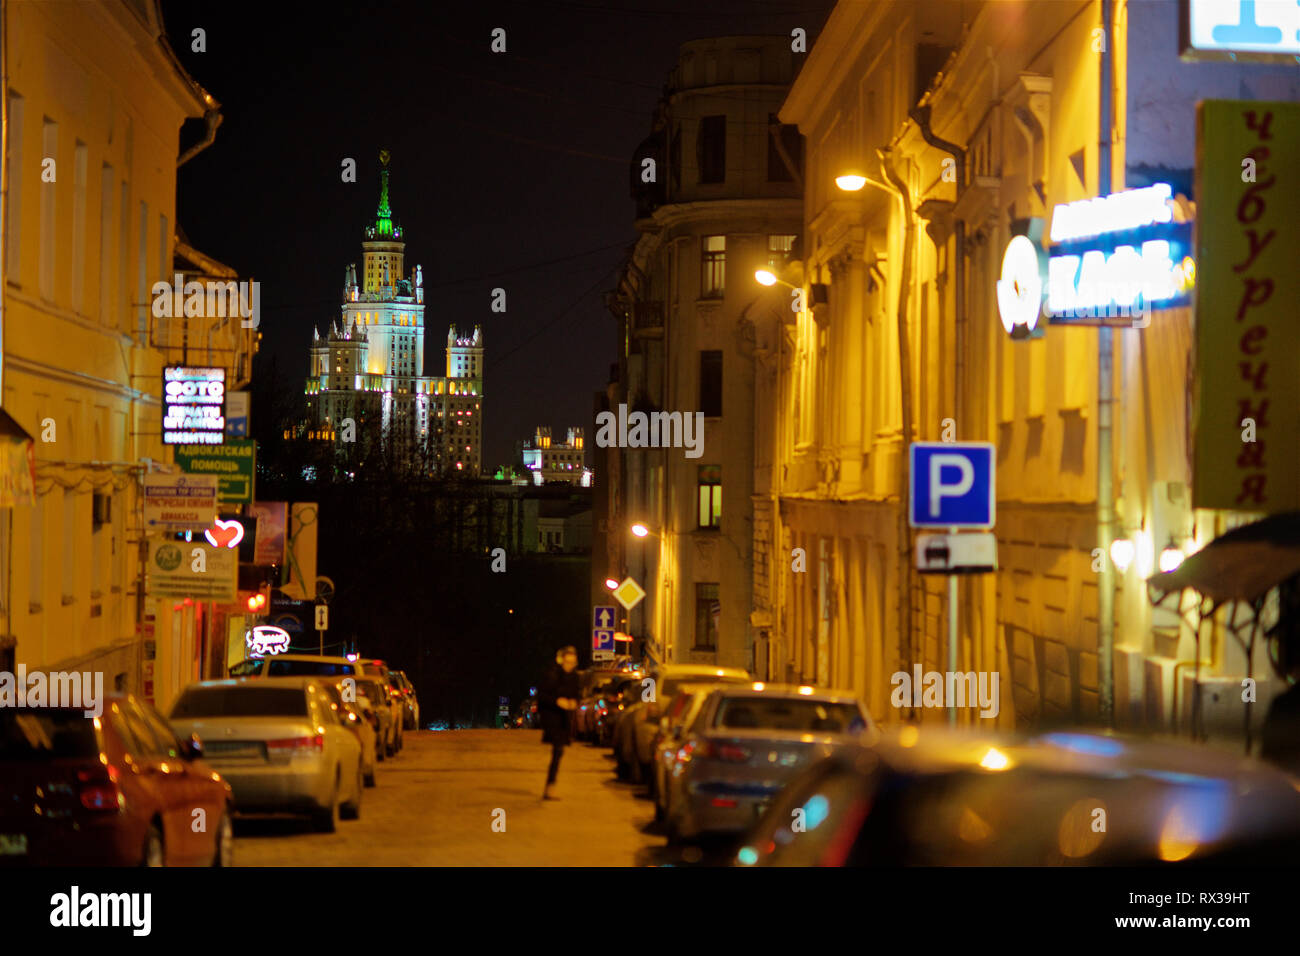 Kotelnicheskaya Embankment Building (on of Seven Sisters stalinist buildings), Moscow, Russia Stock Photo